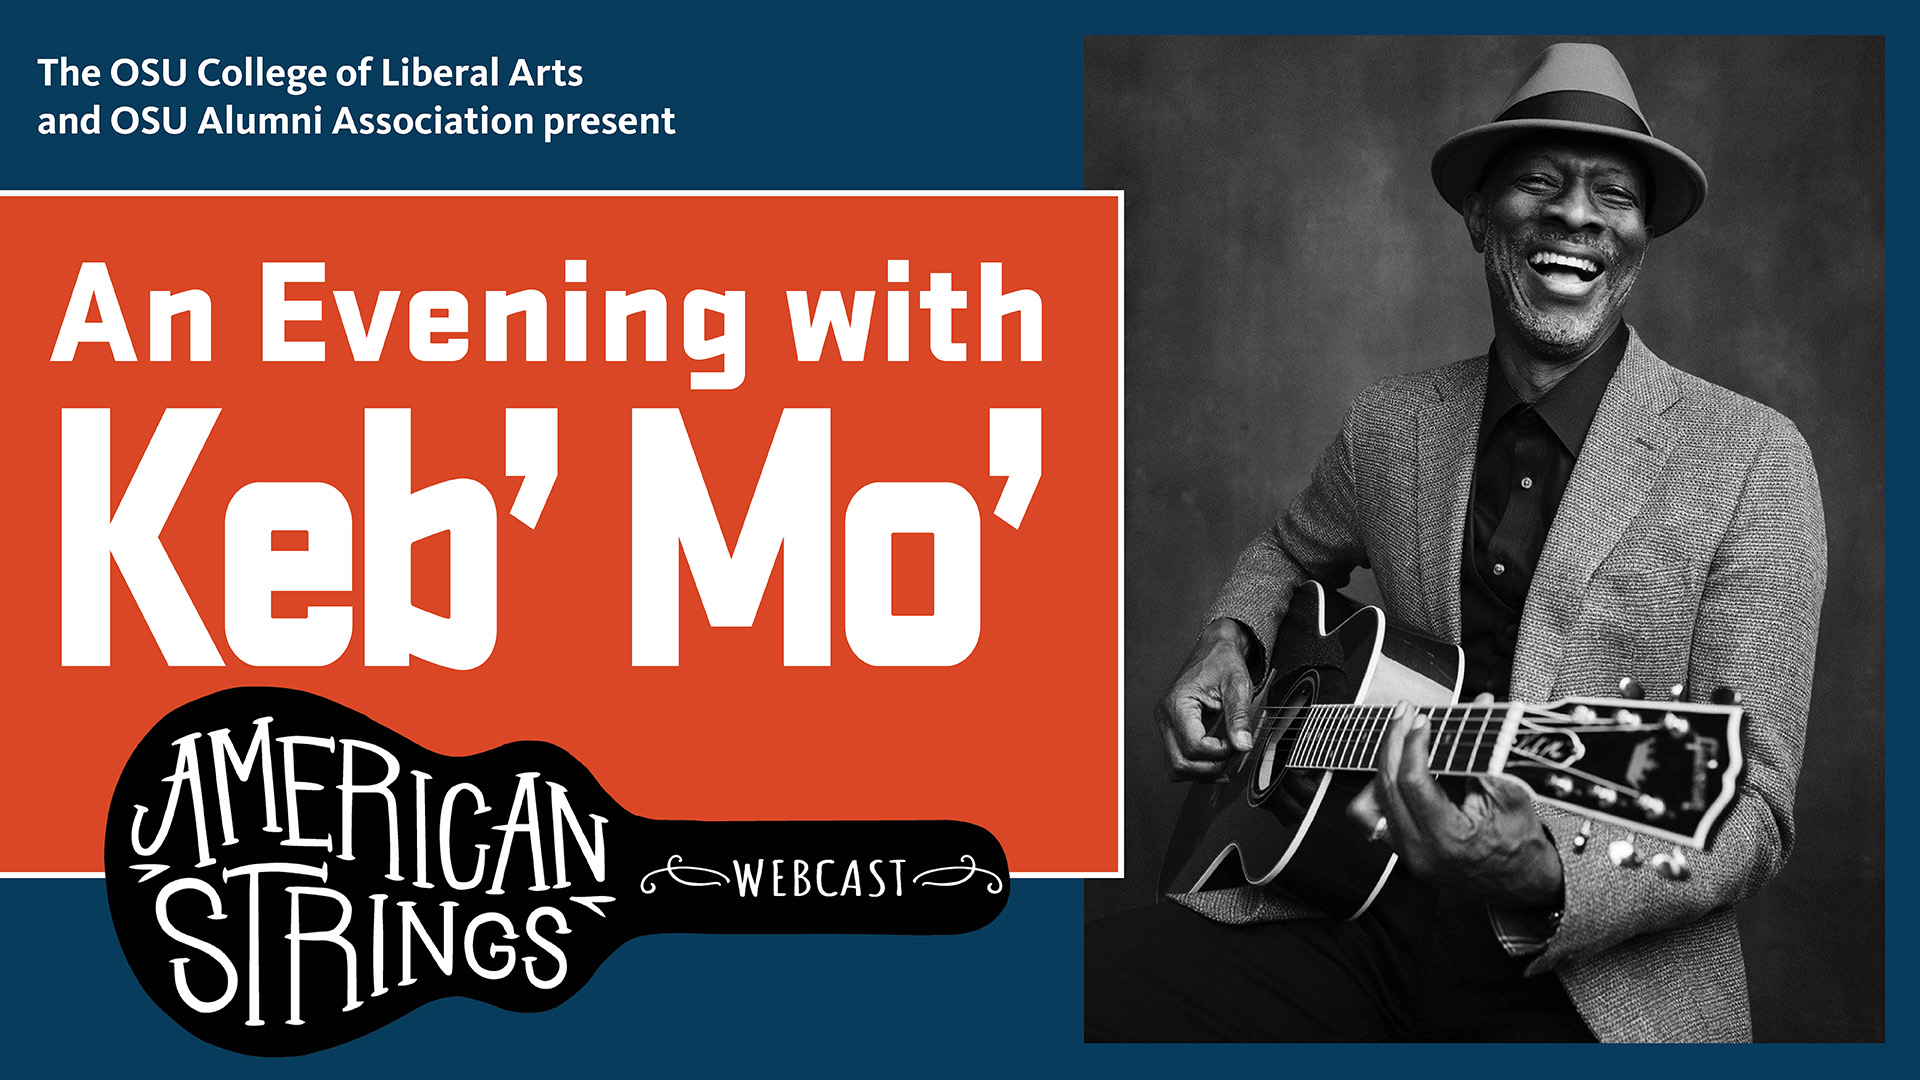 An Evening with Keb' Mo'